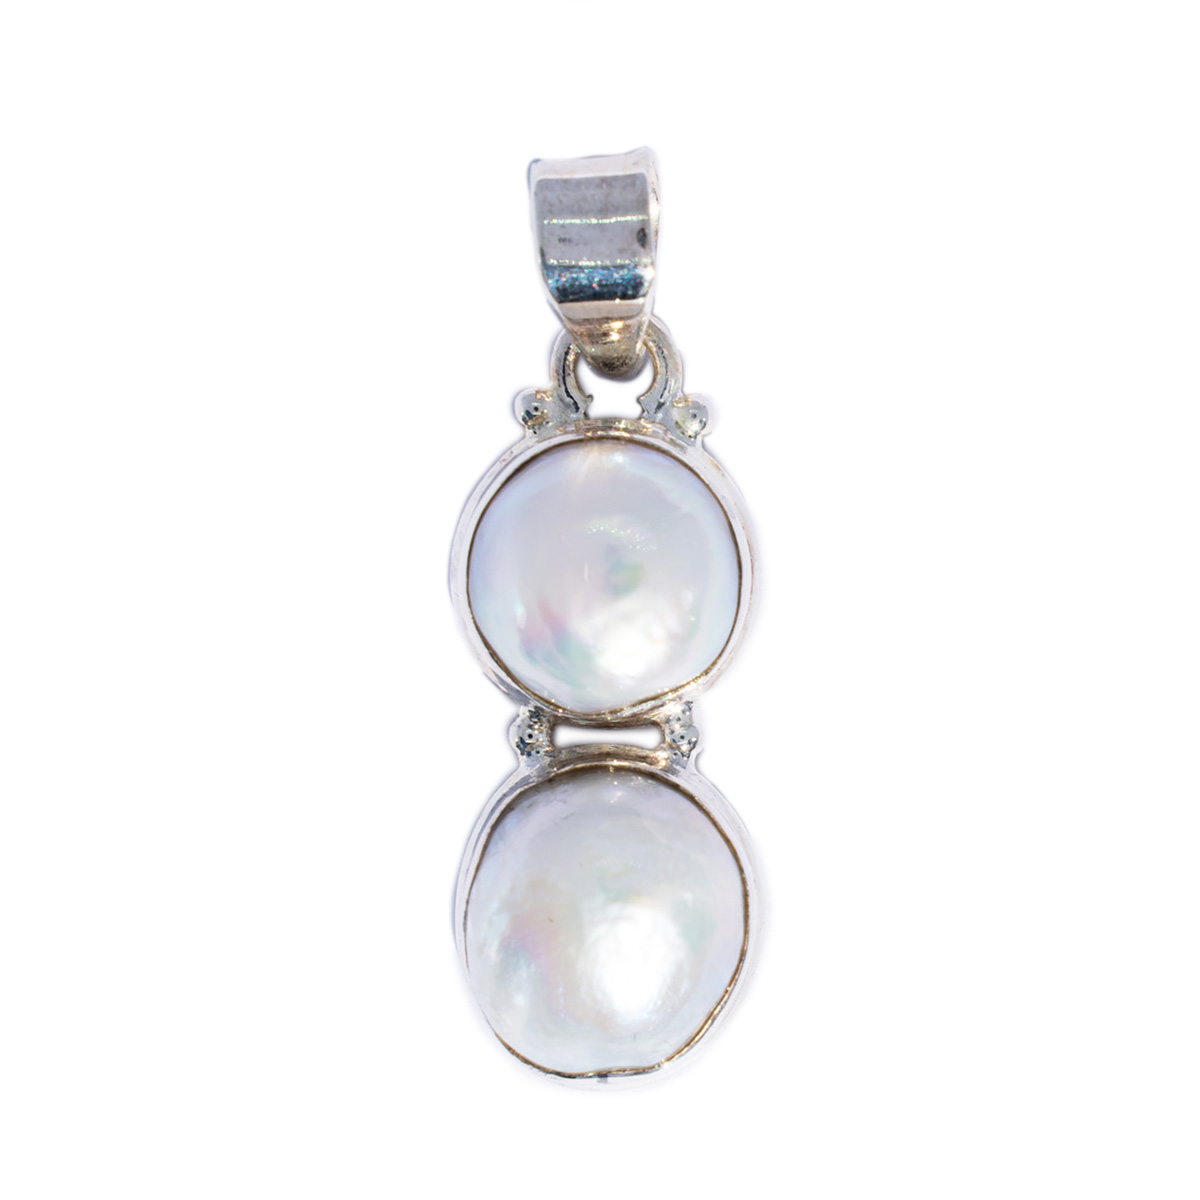 Sri Avinash Infused™ Twin Pearl Pendant in Sterling Silver - Divine Spirit & Protection Infusion